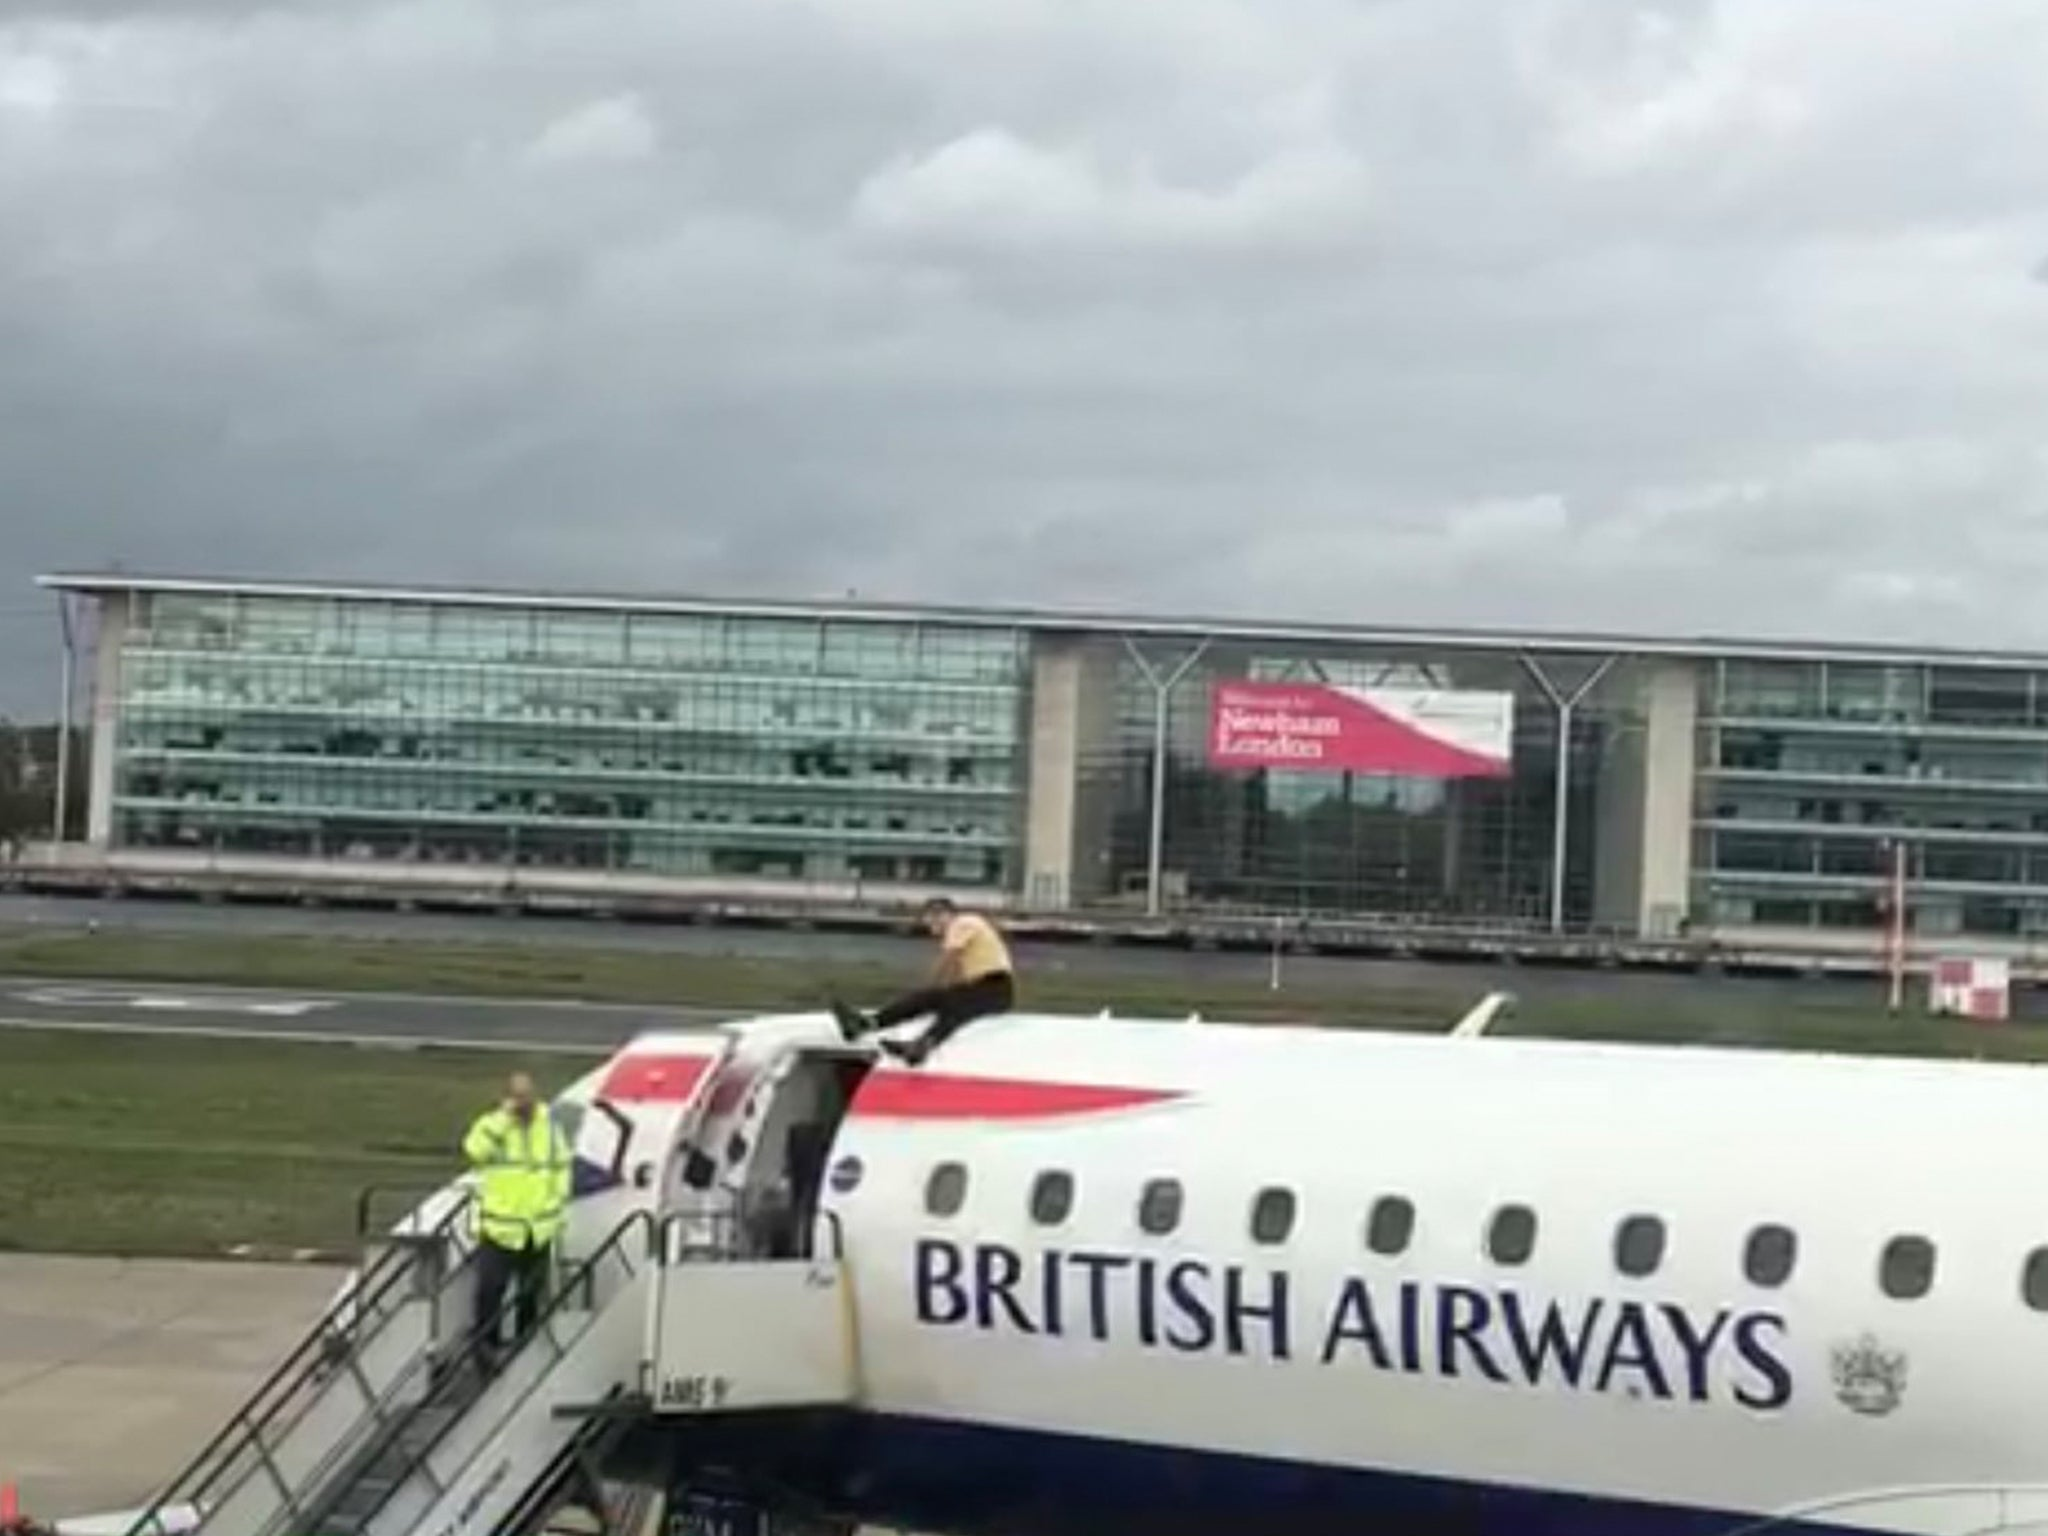 Extinction Rebellion protests: Man climbs on to British Airways plane before take-off as climate activists occupy airport